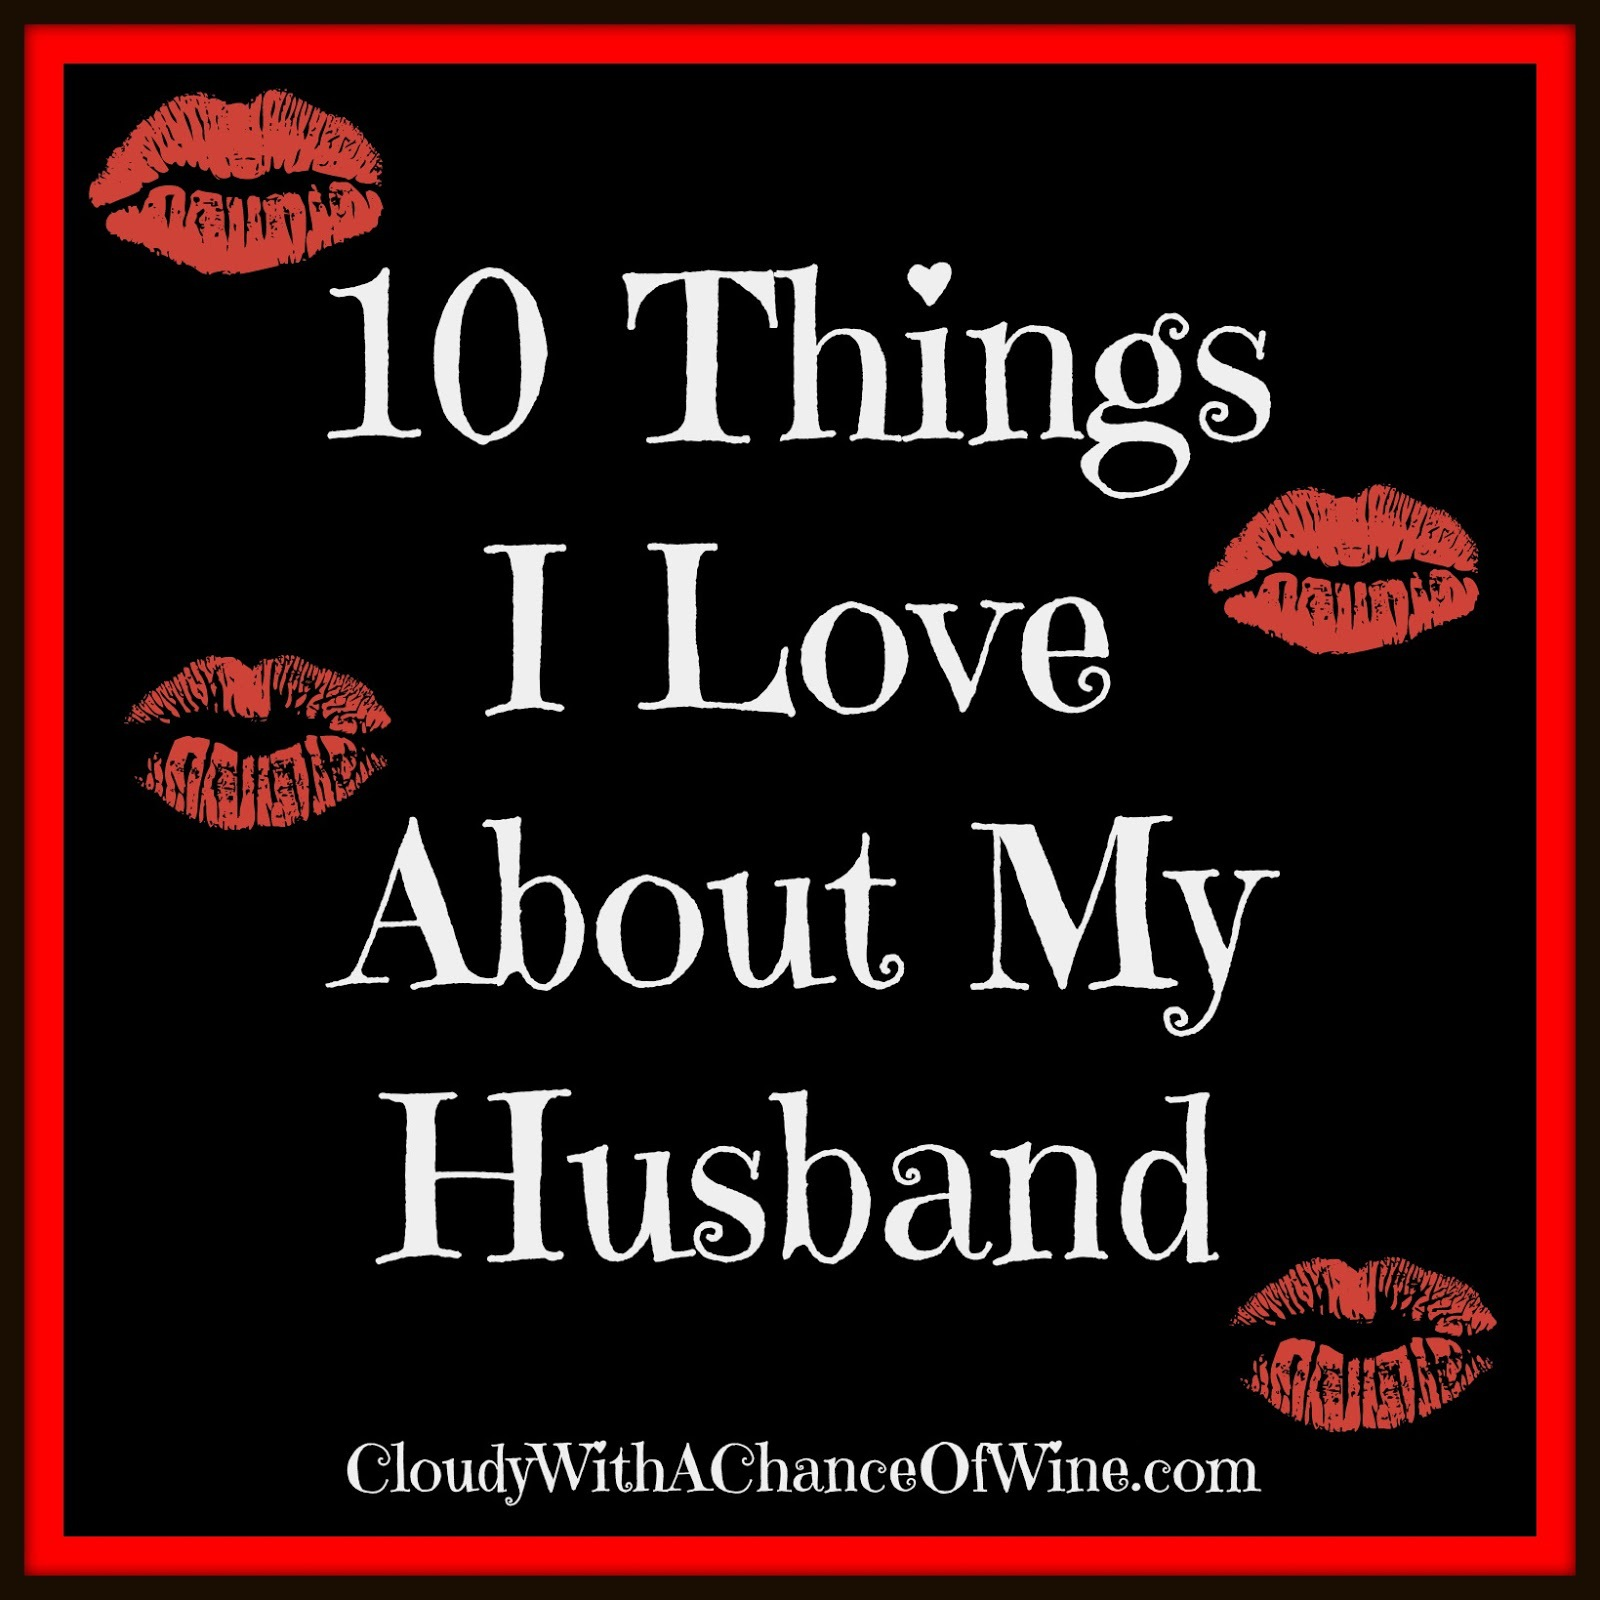 I Love About My Husband